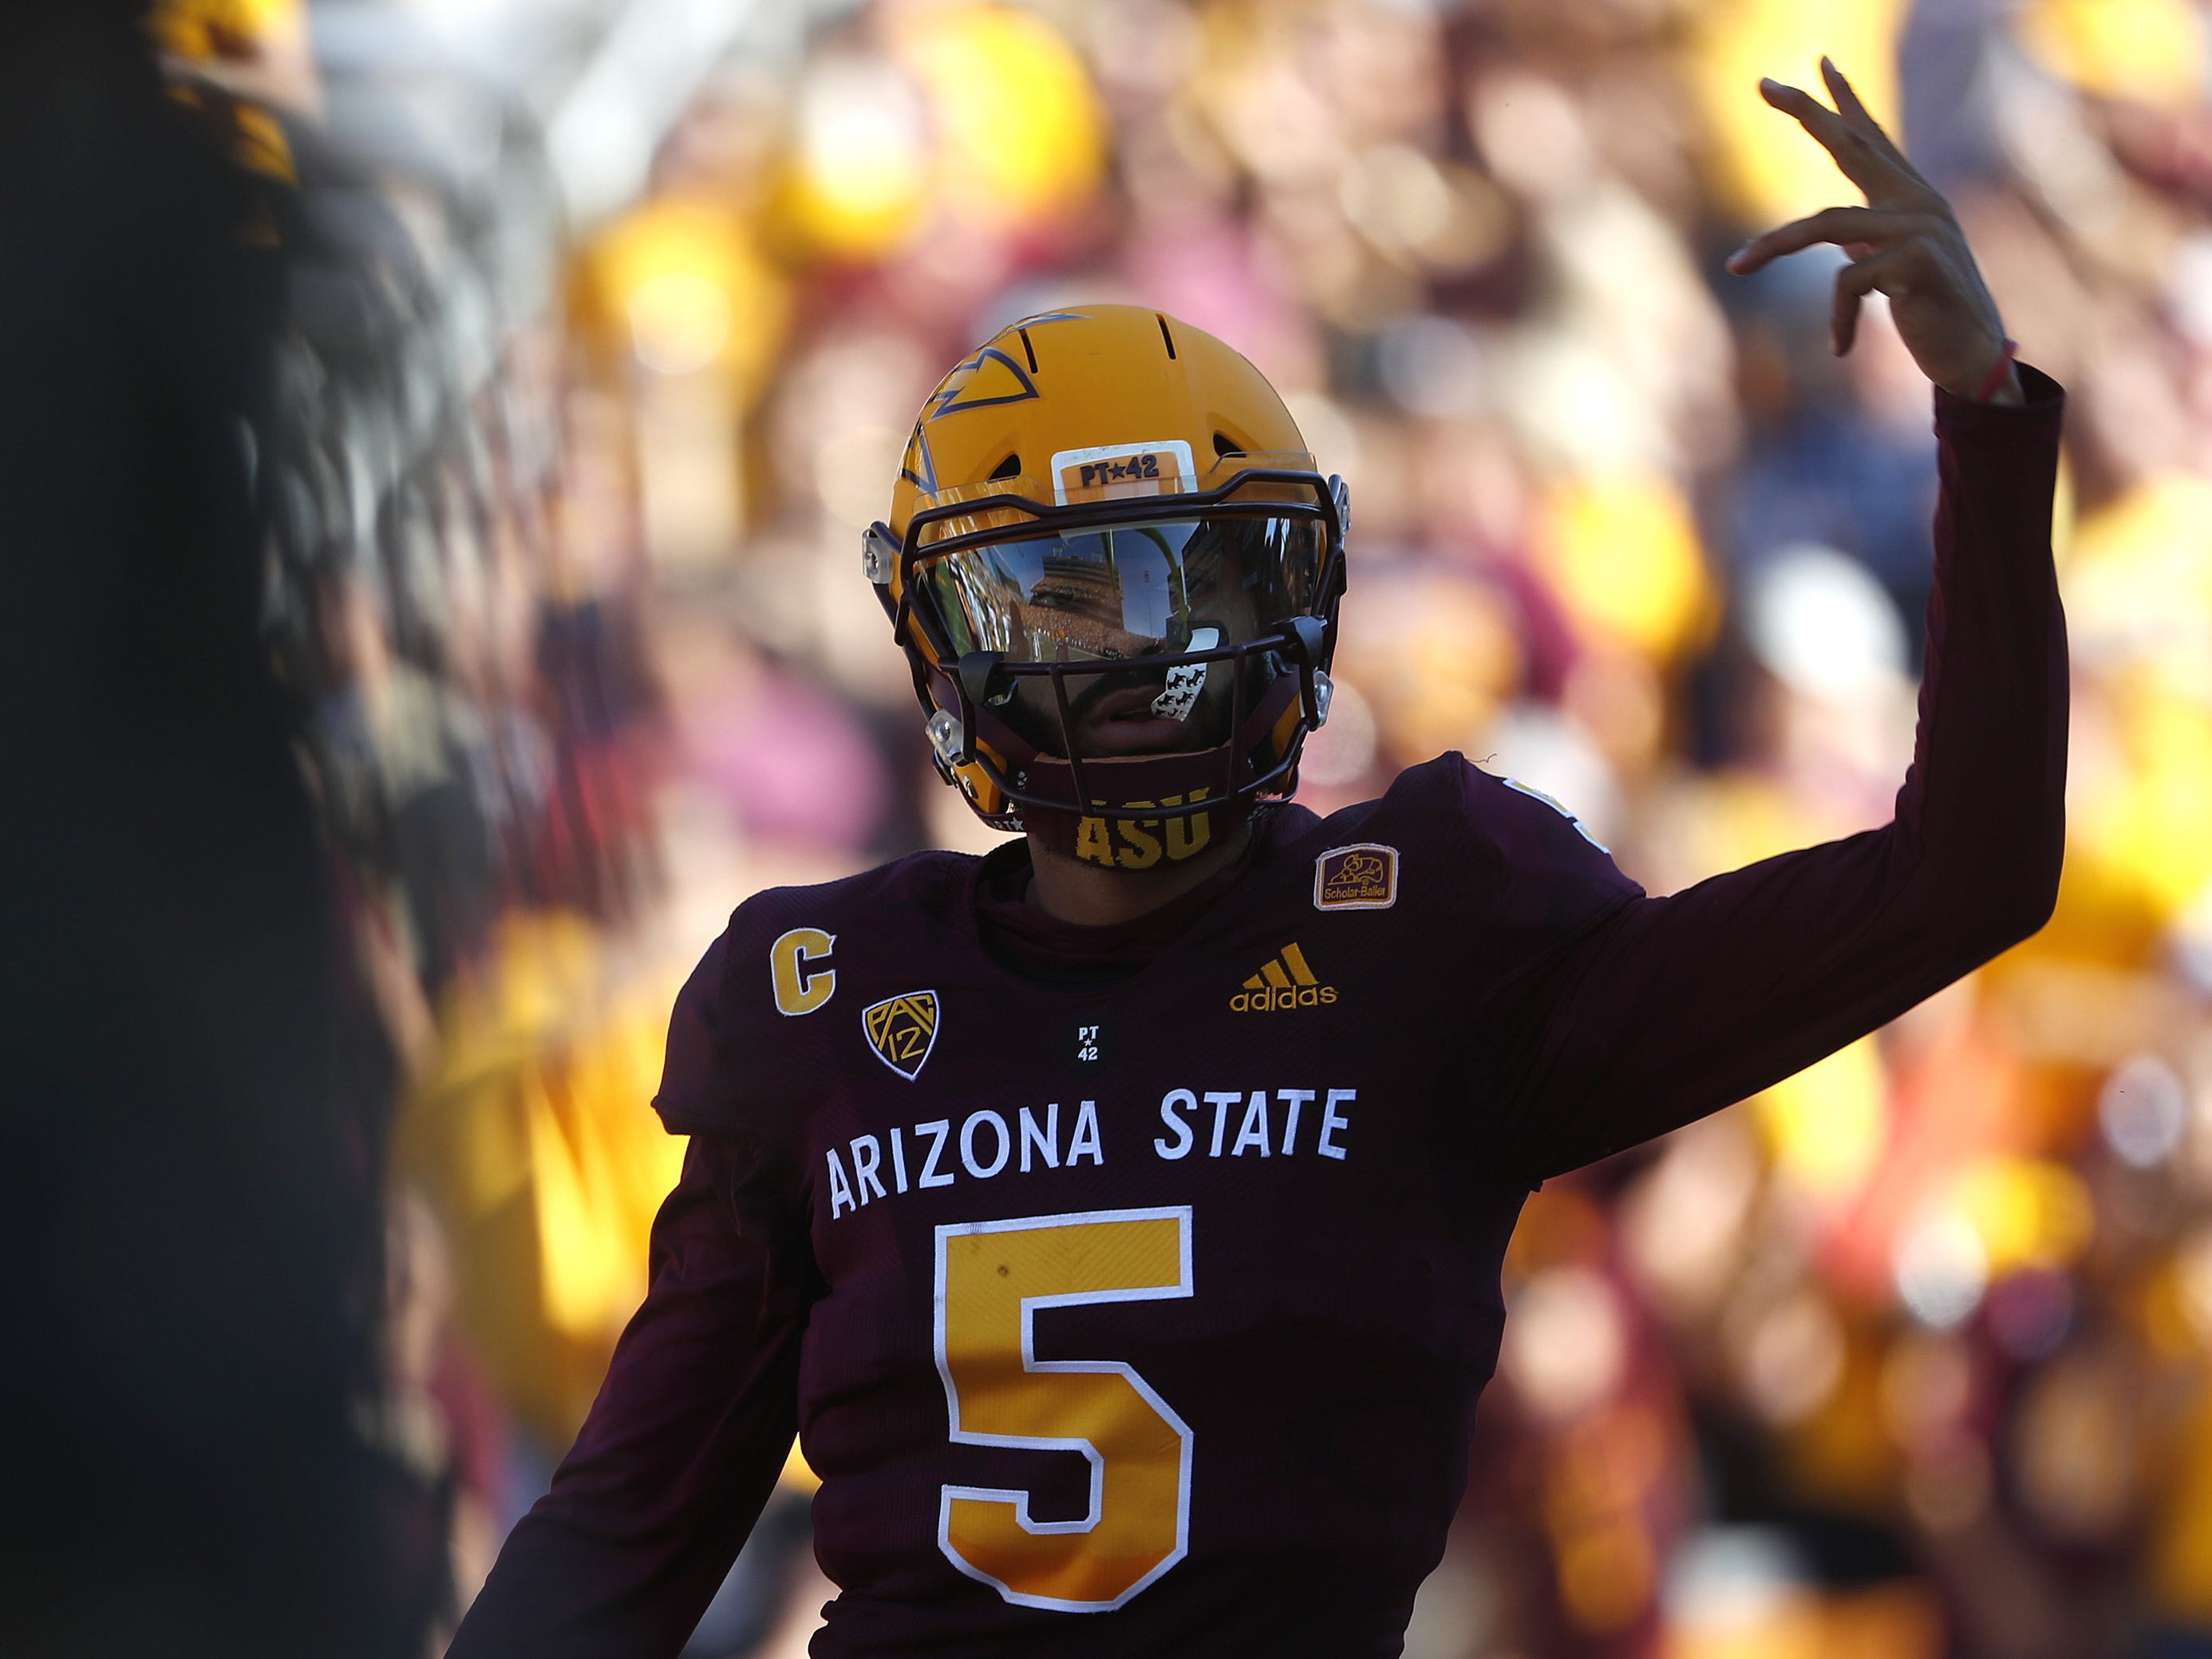 ASU's Manny Wilkins (5) celebrates a touchdown against UCLA during the first half at Sun Devil Stadium in Tempe, Ariz. on November 10, 2018.